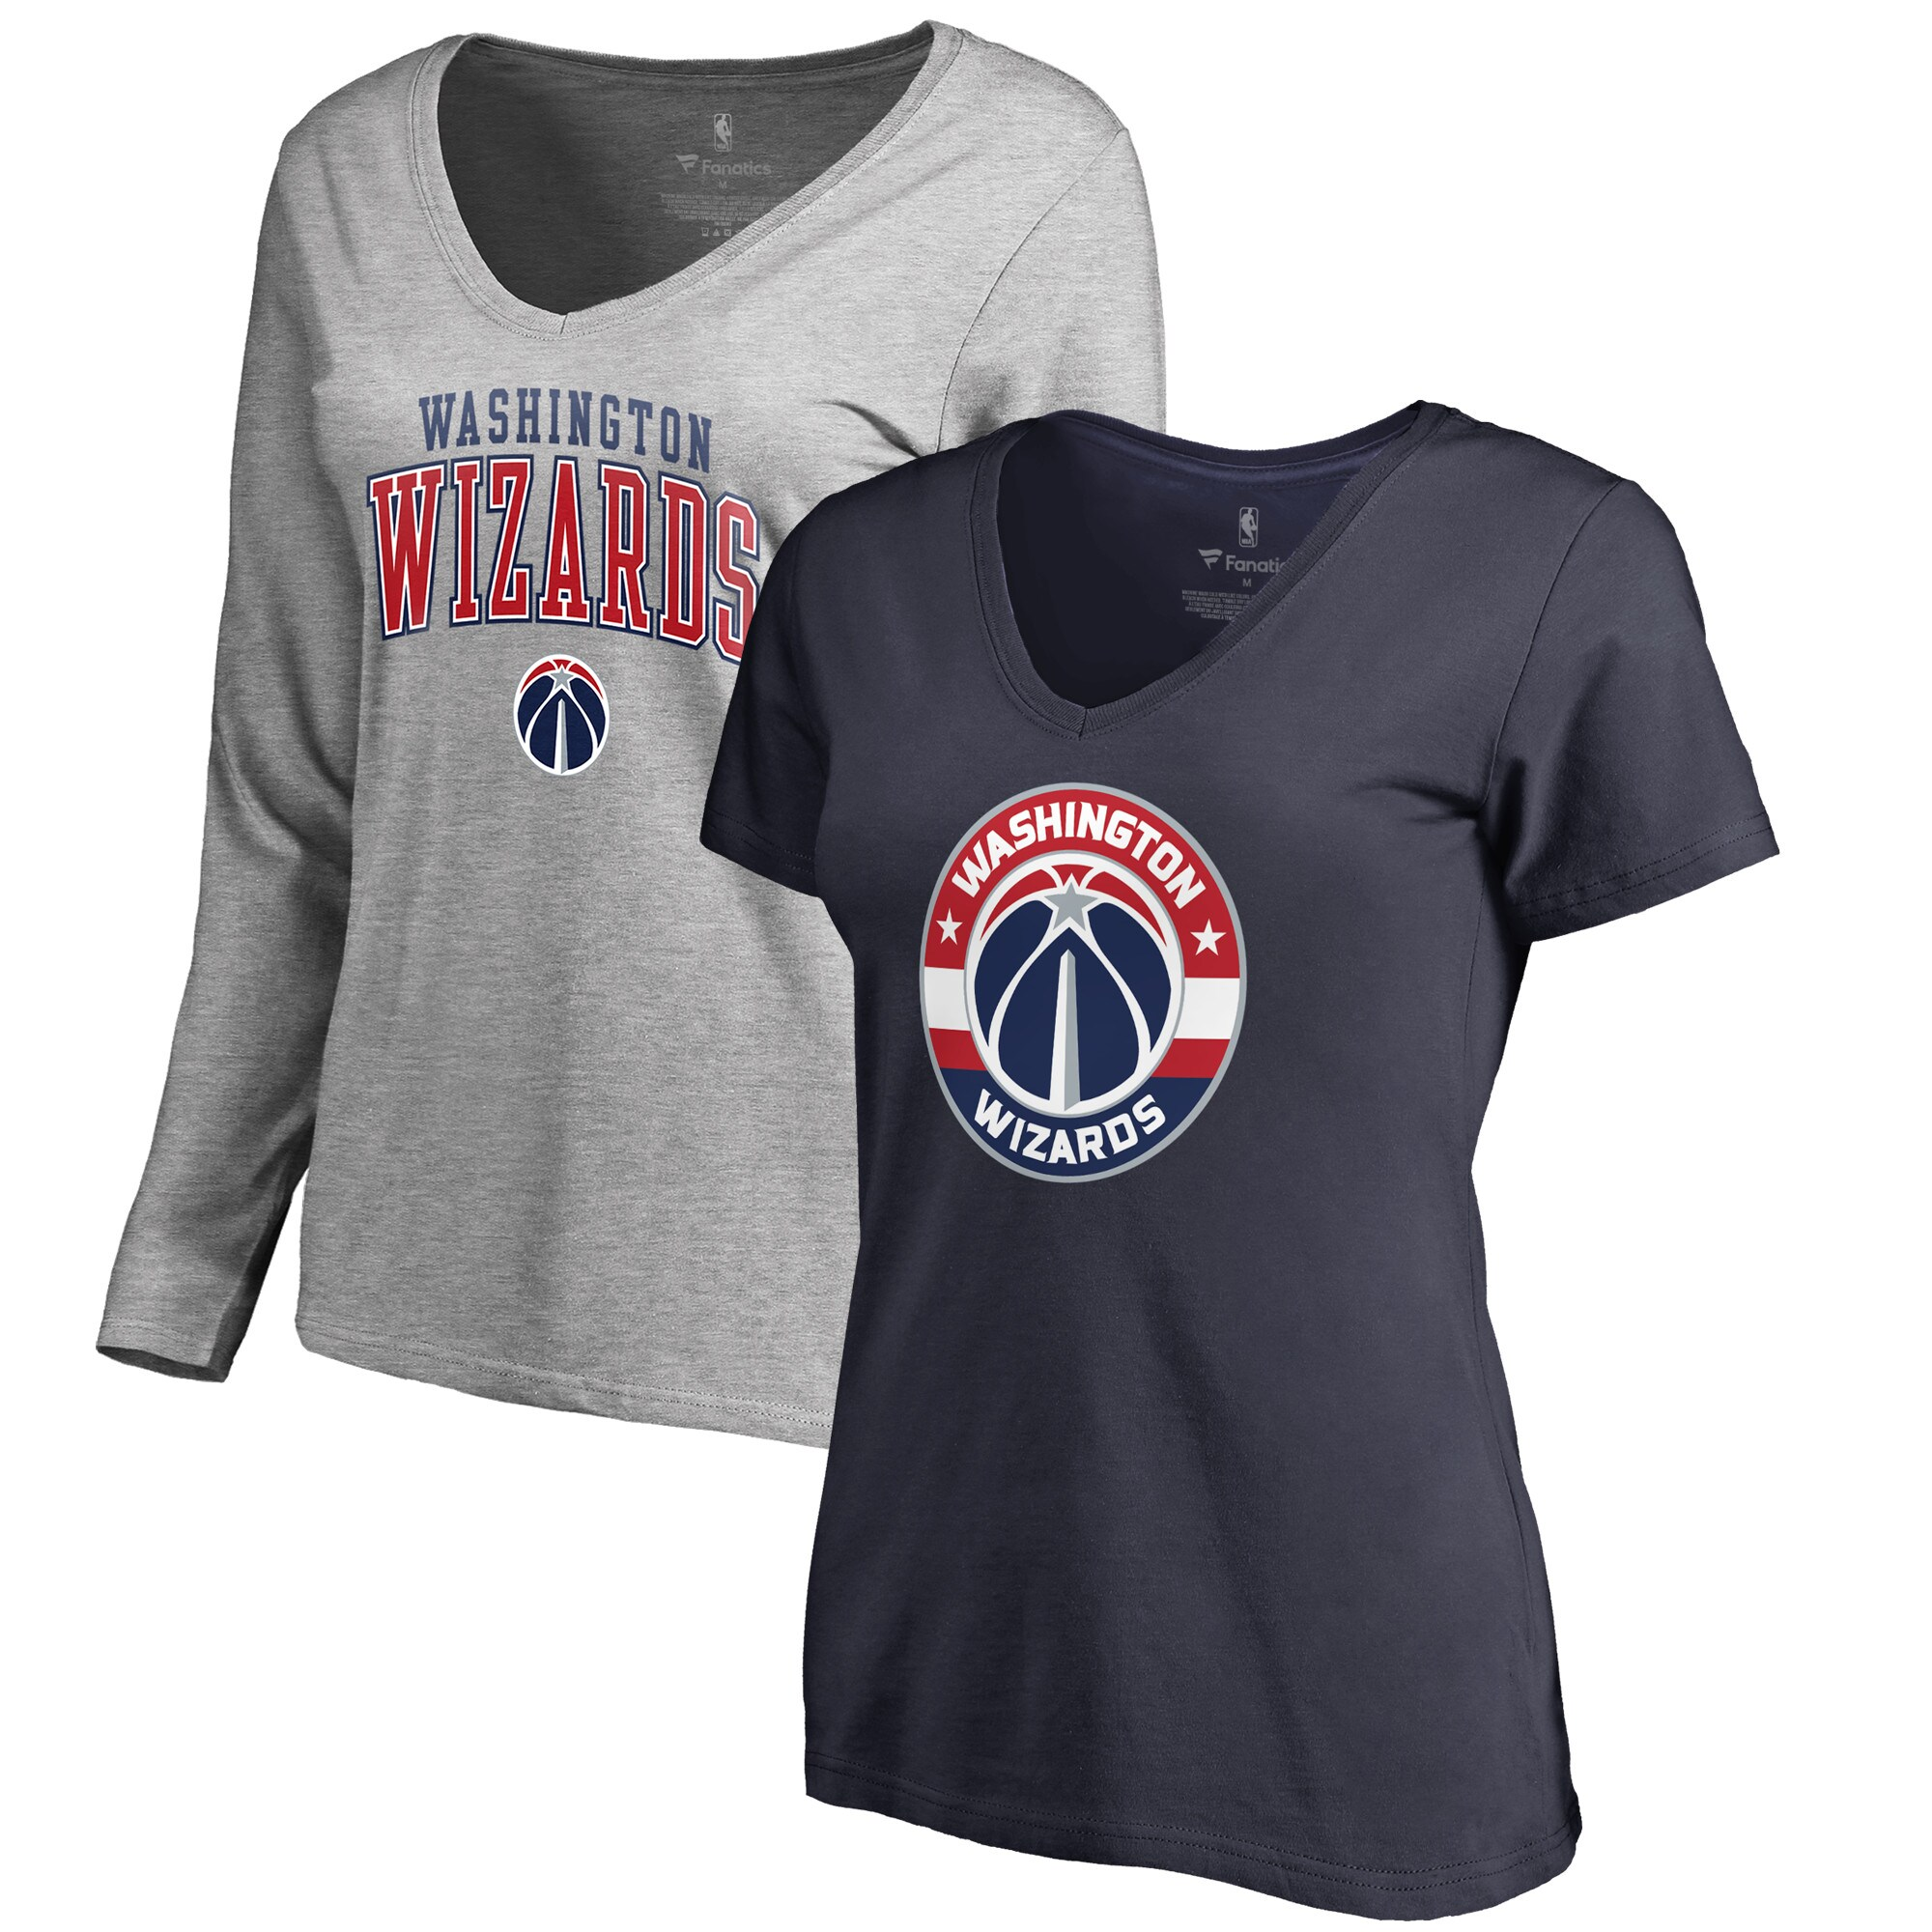 Washington Wizards Fanatics Branded Women's Square Up Combo V-Neck T-Shirt Set - Navy/Gray